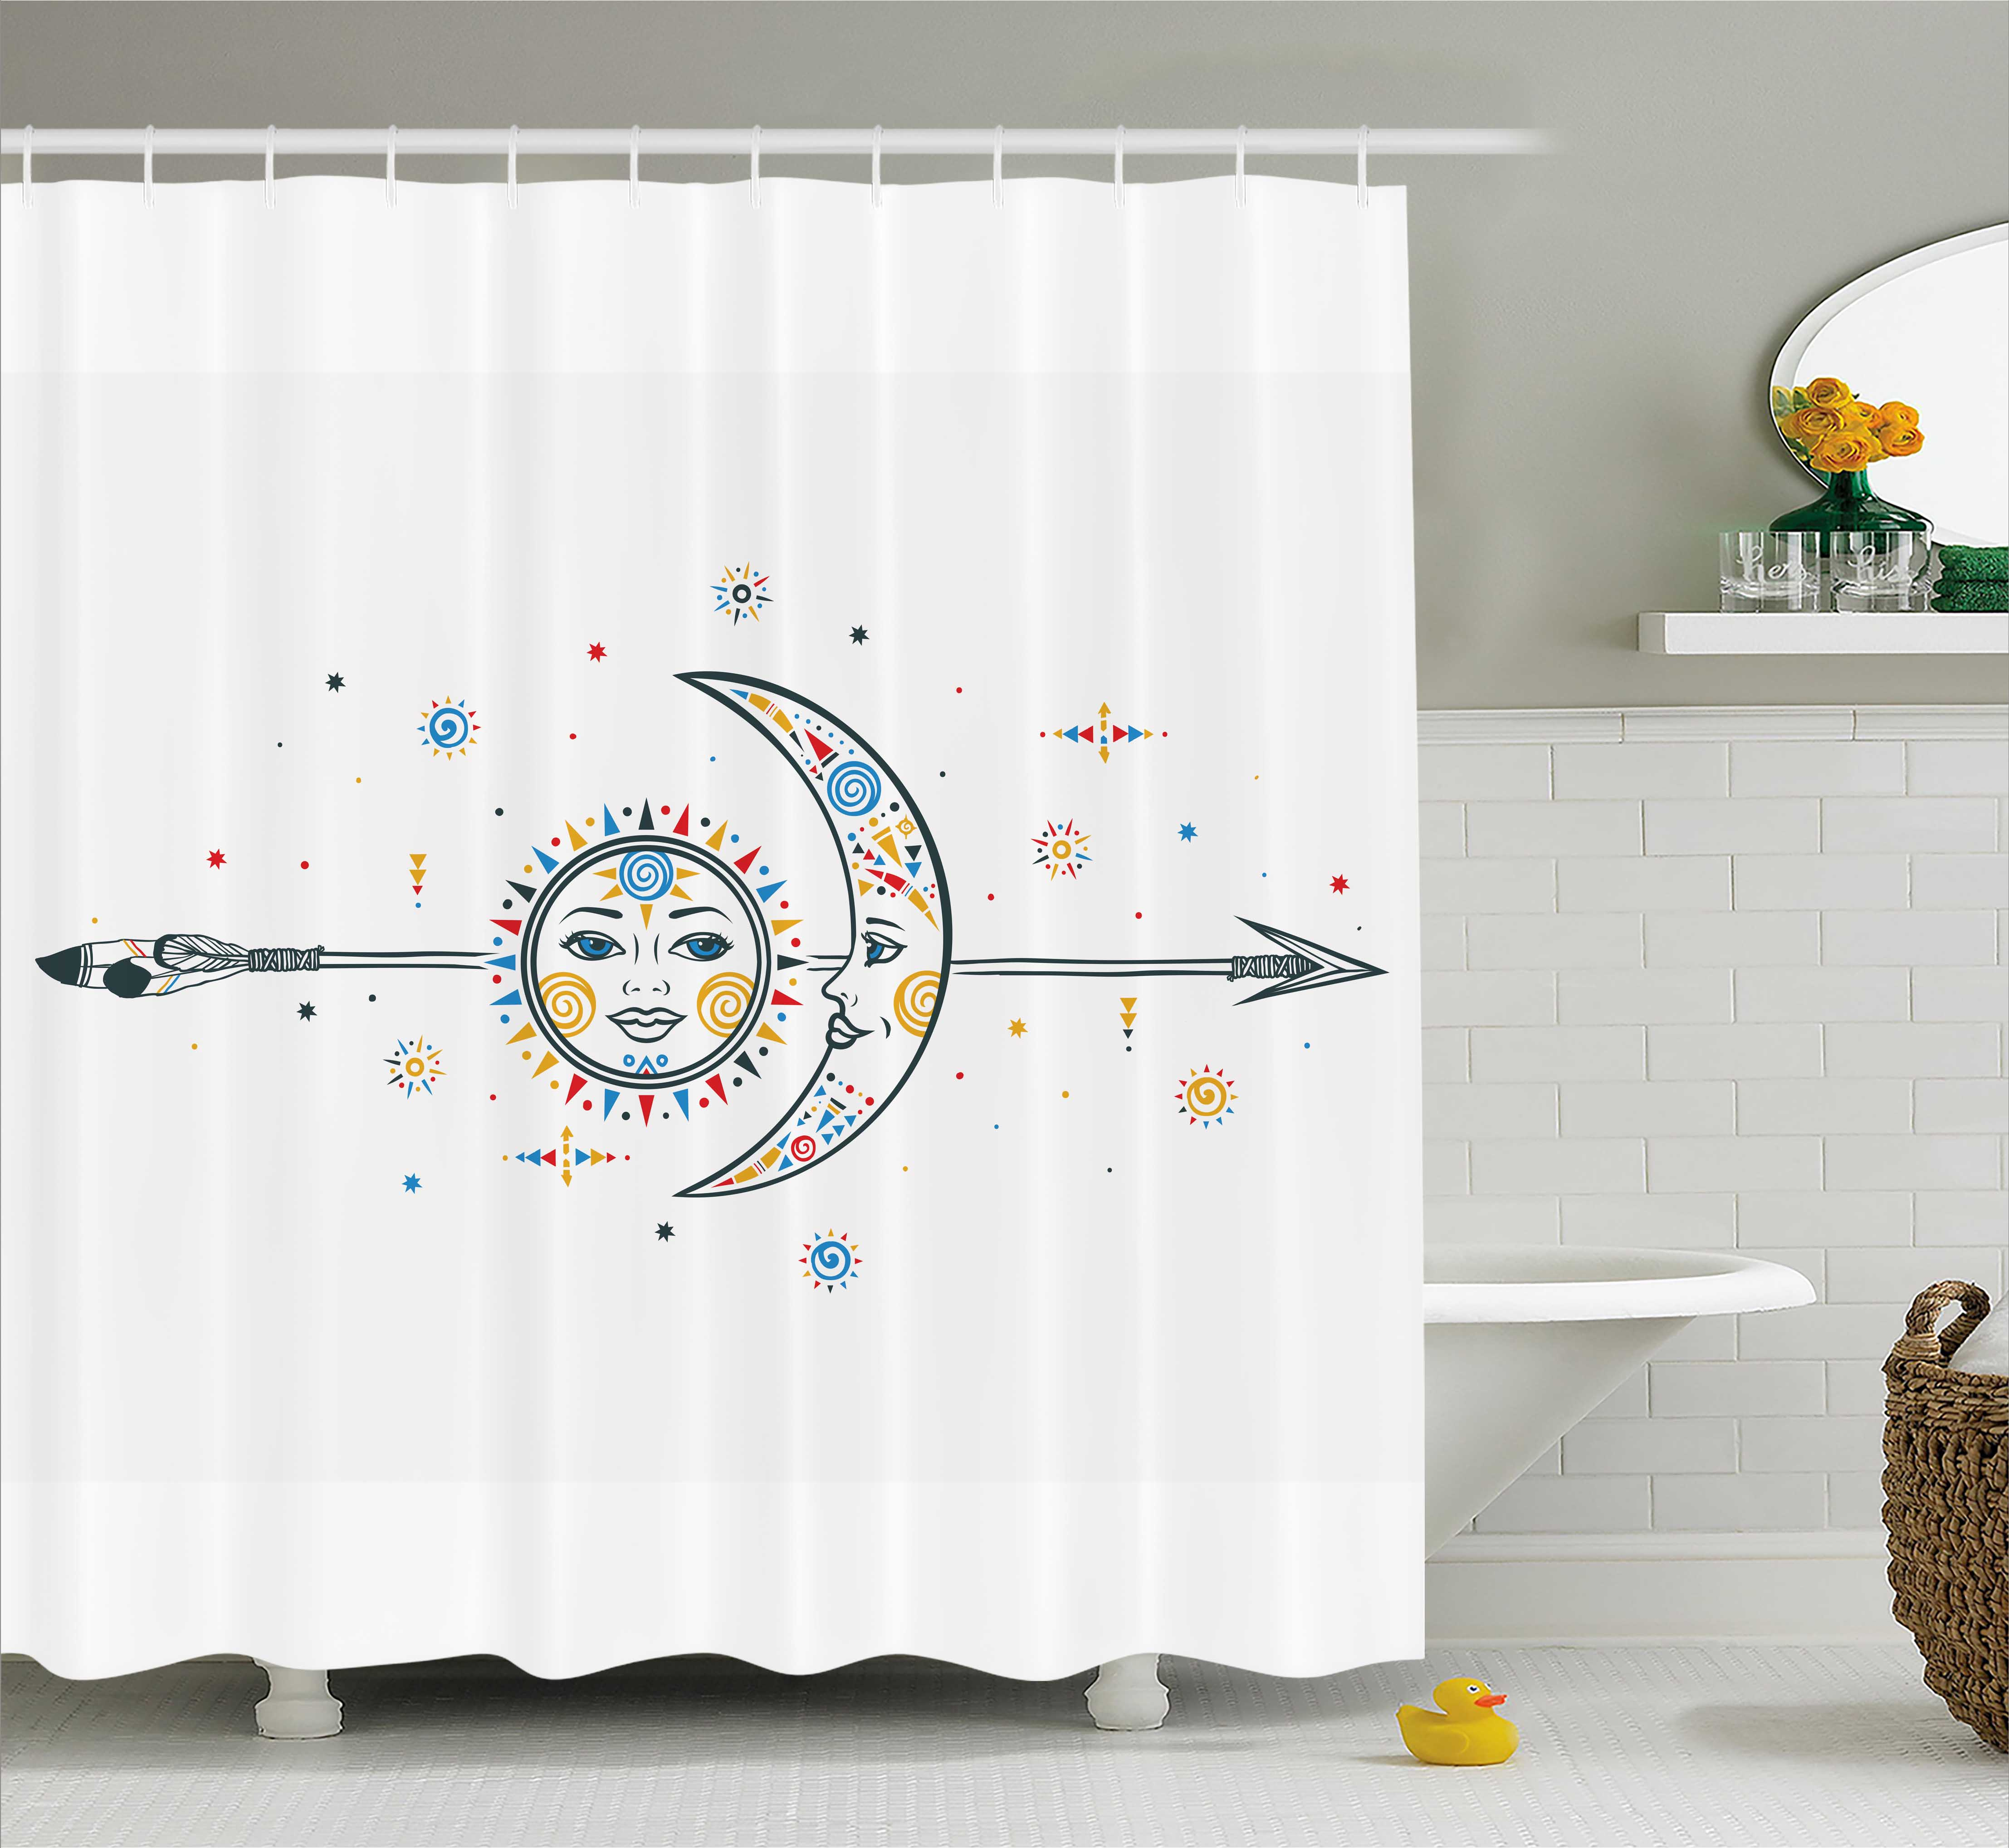 Farm House Decor Shower Curtain, Ethnic Aztec Moon Sun with Spiral Vortex Stars Sparkle Figures Occult Image, Fabric Bathroom Set with Hooks, 69W X 84L Inches Extra Long, Multi, by Ambesonne